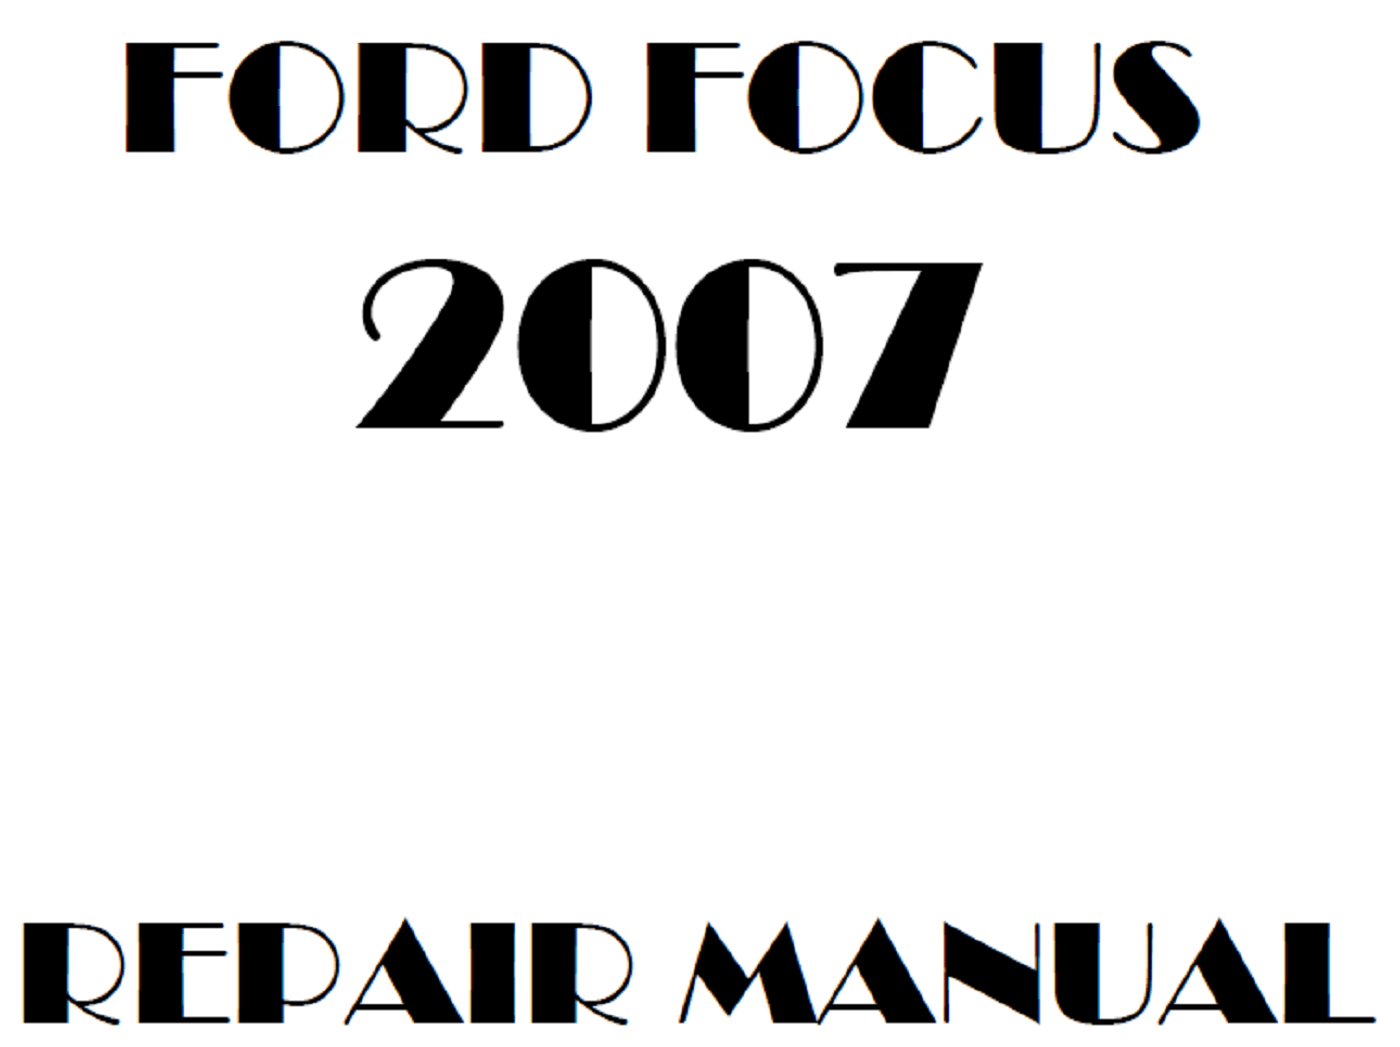 2007 Ford Focus repair manual